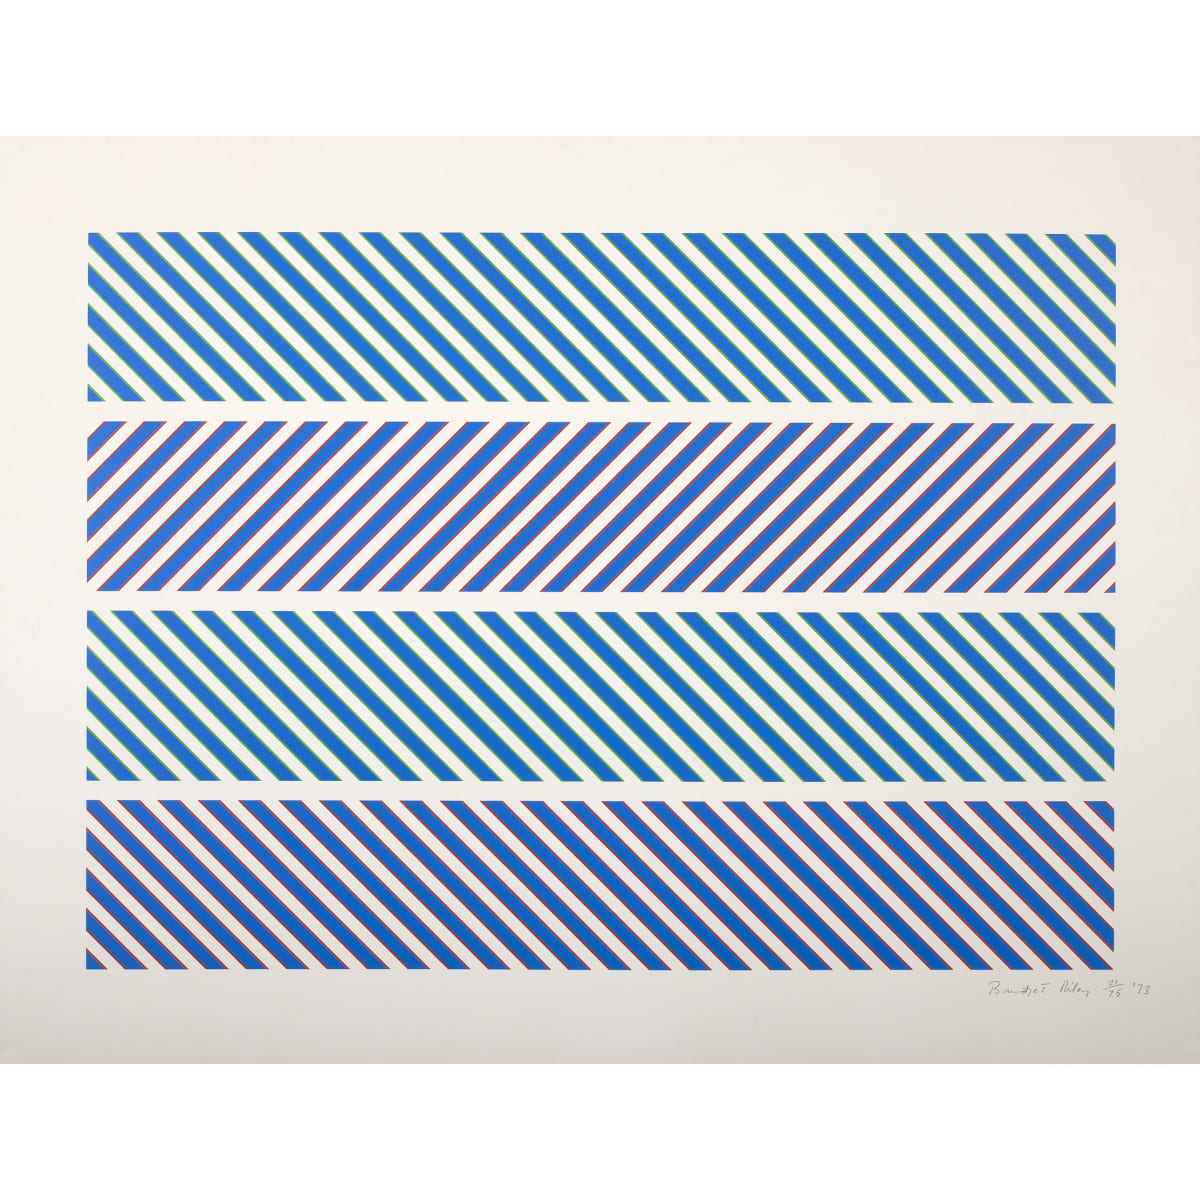 Bridget Riley Untitled (from the Rothko Memorial Portfolio), 1973 signed, numbered and dated '73 in pencil to margin screenprint on Aquarelle Arches Satine 21 3/4 x 30 3/8 inches numbered 21 from the edition of 75 + 15 APs